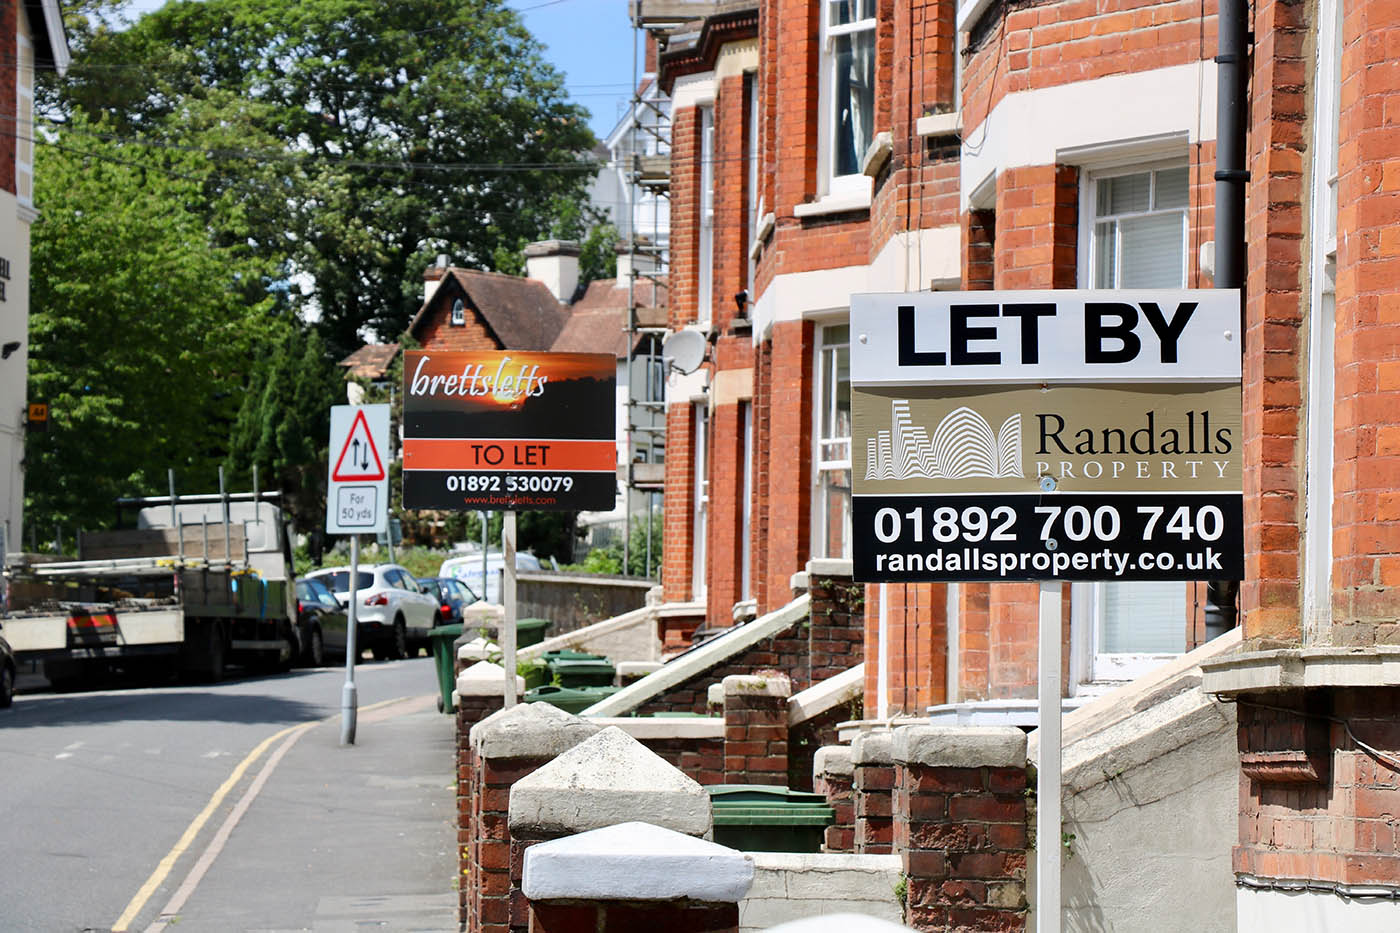 Will buy-to-let troubles presage a phoenix like rise again? - LandlordZONE